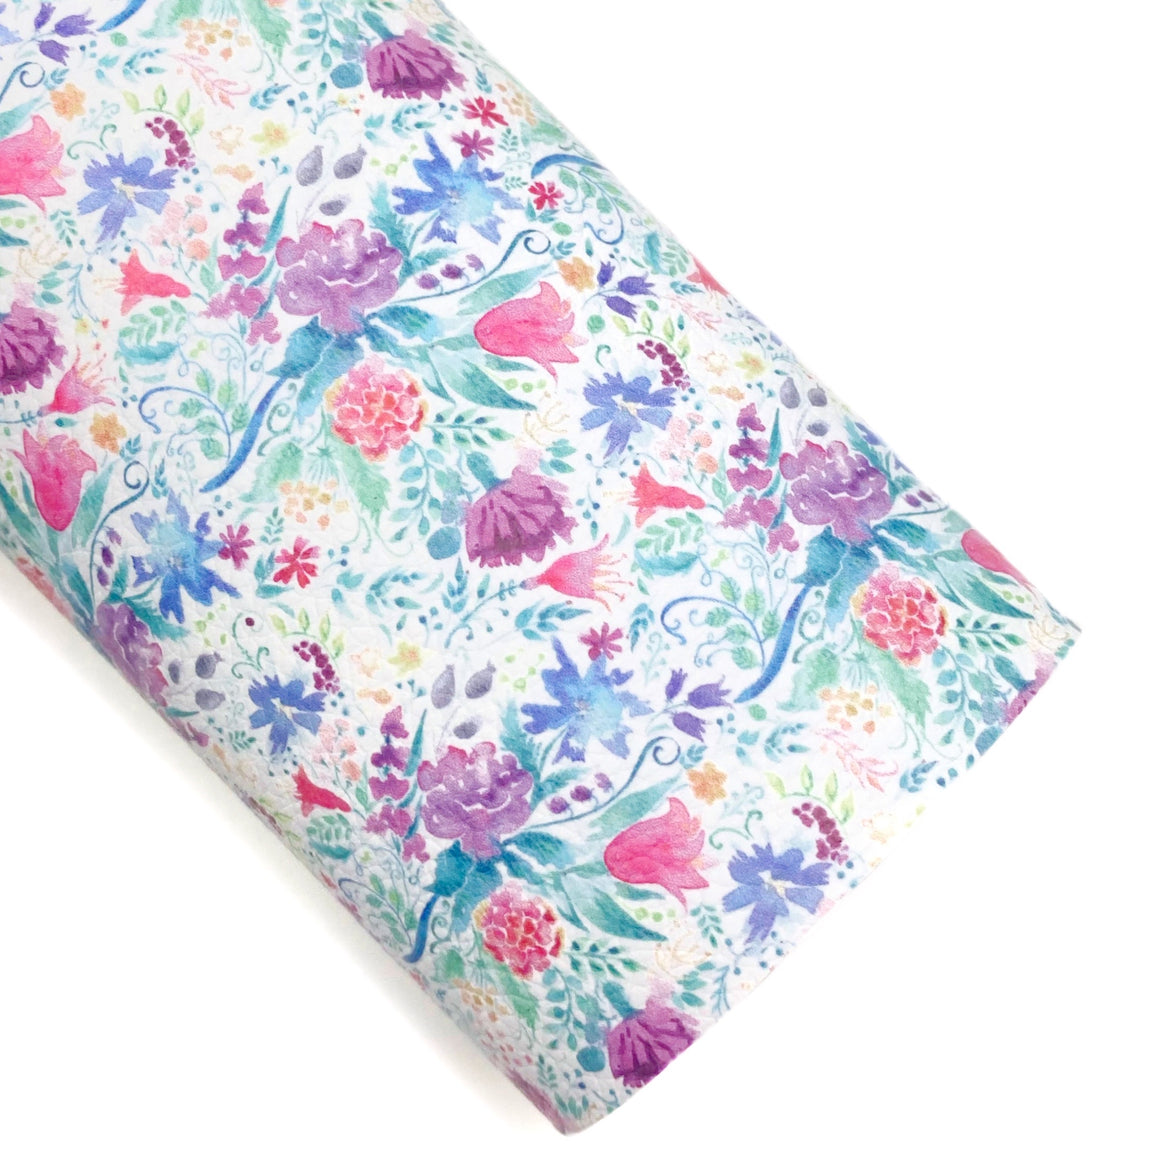 Watercolor Whimsical Floral Vegan Leather